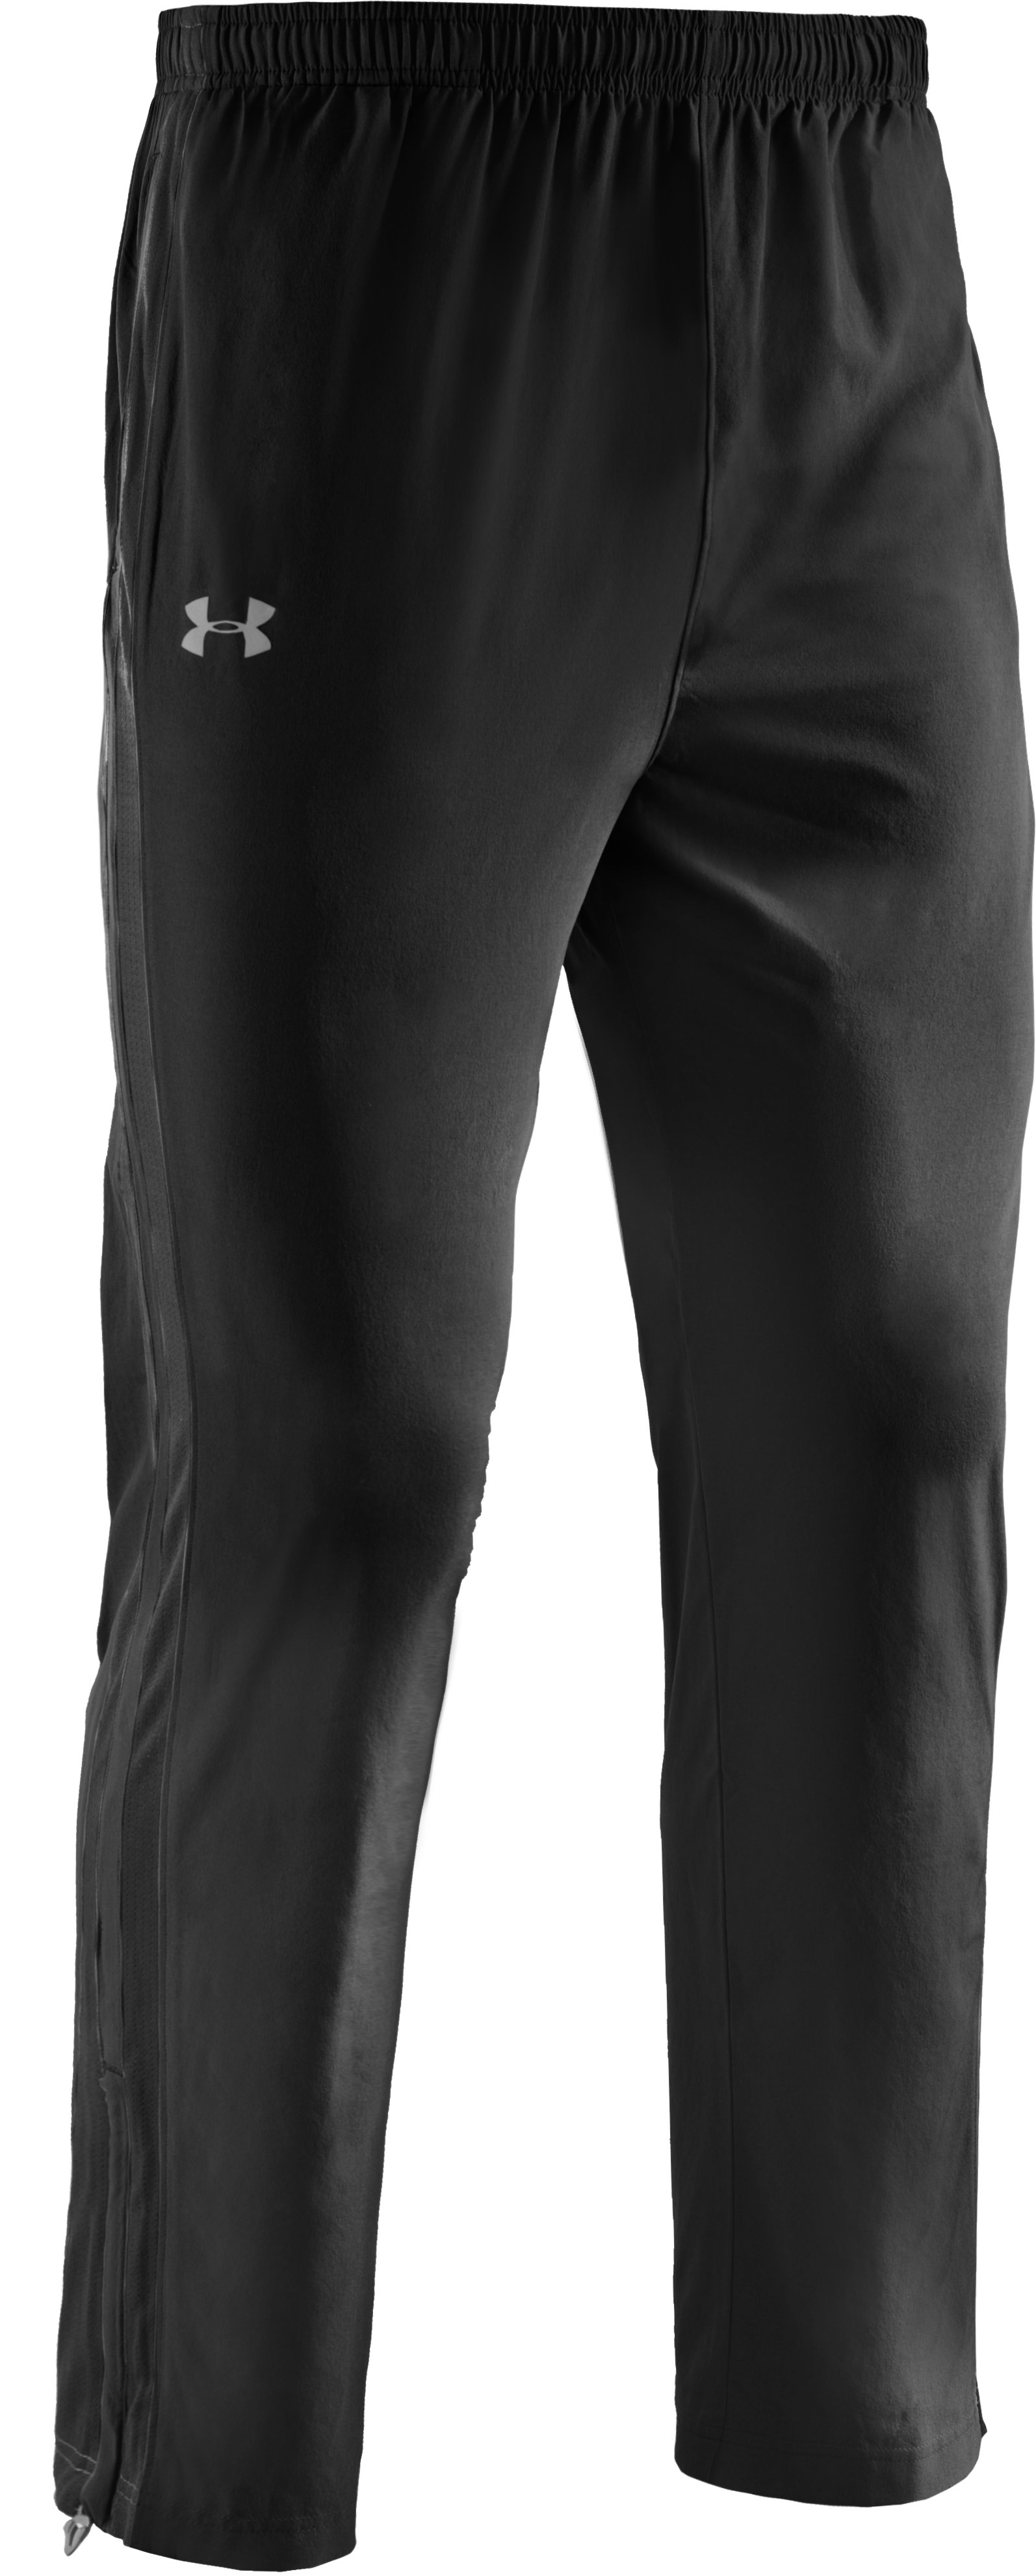 Men's Transit Woven Pants, Black